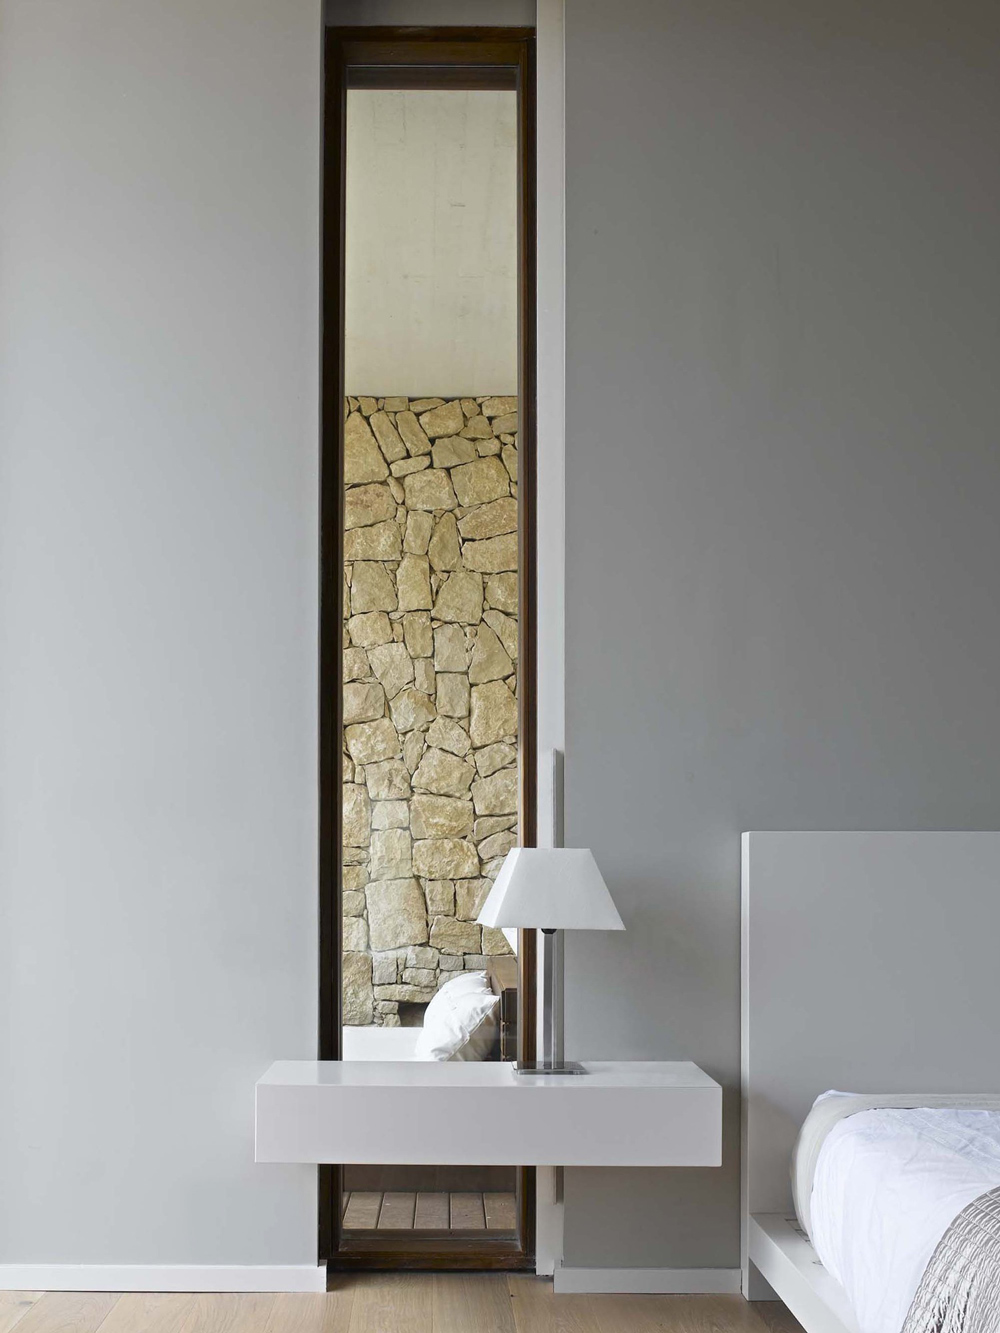 Tall Mirror, Bedroom, Contemporary Home in Monasterios, Spain